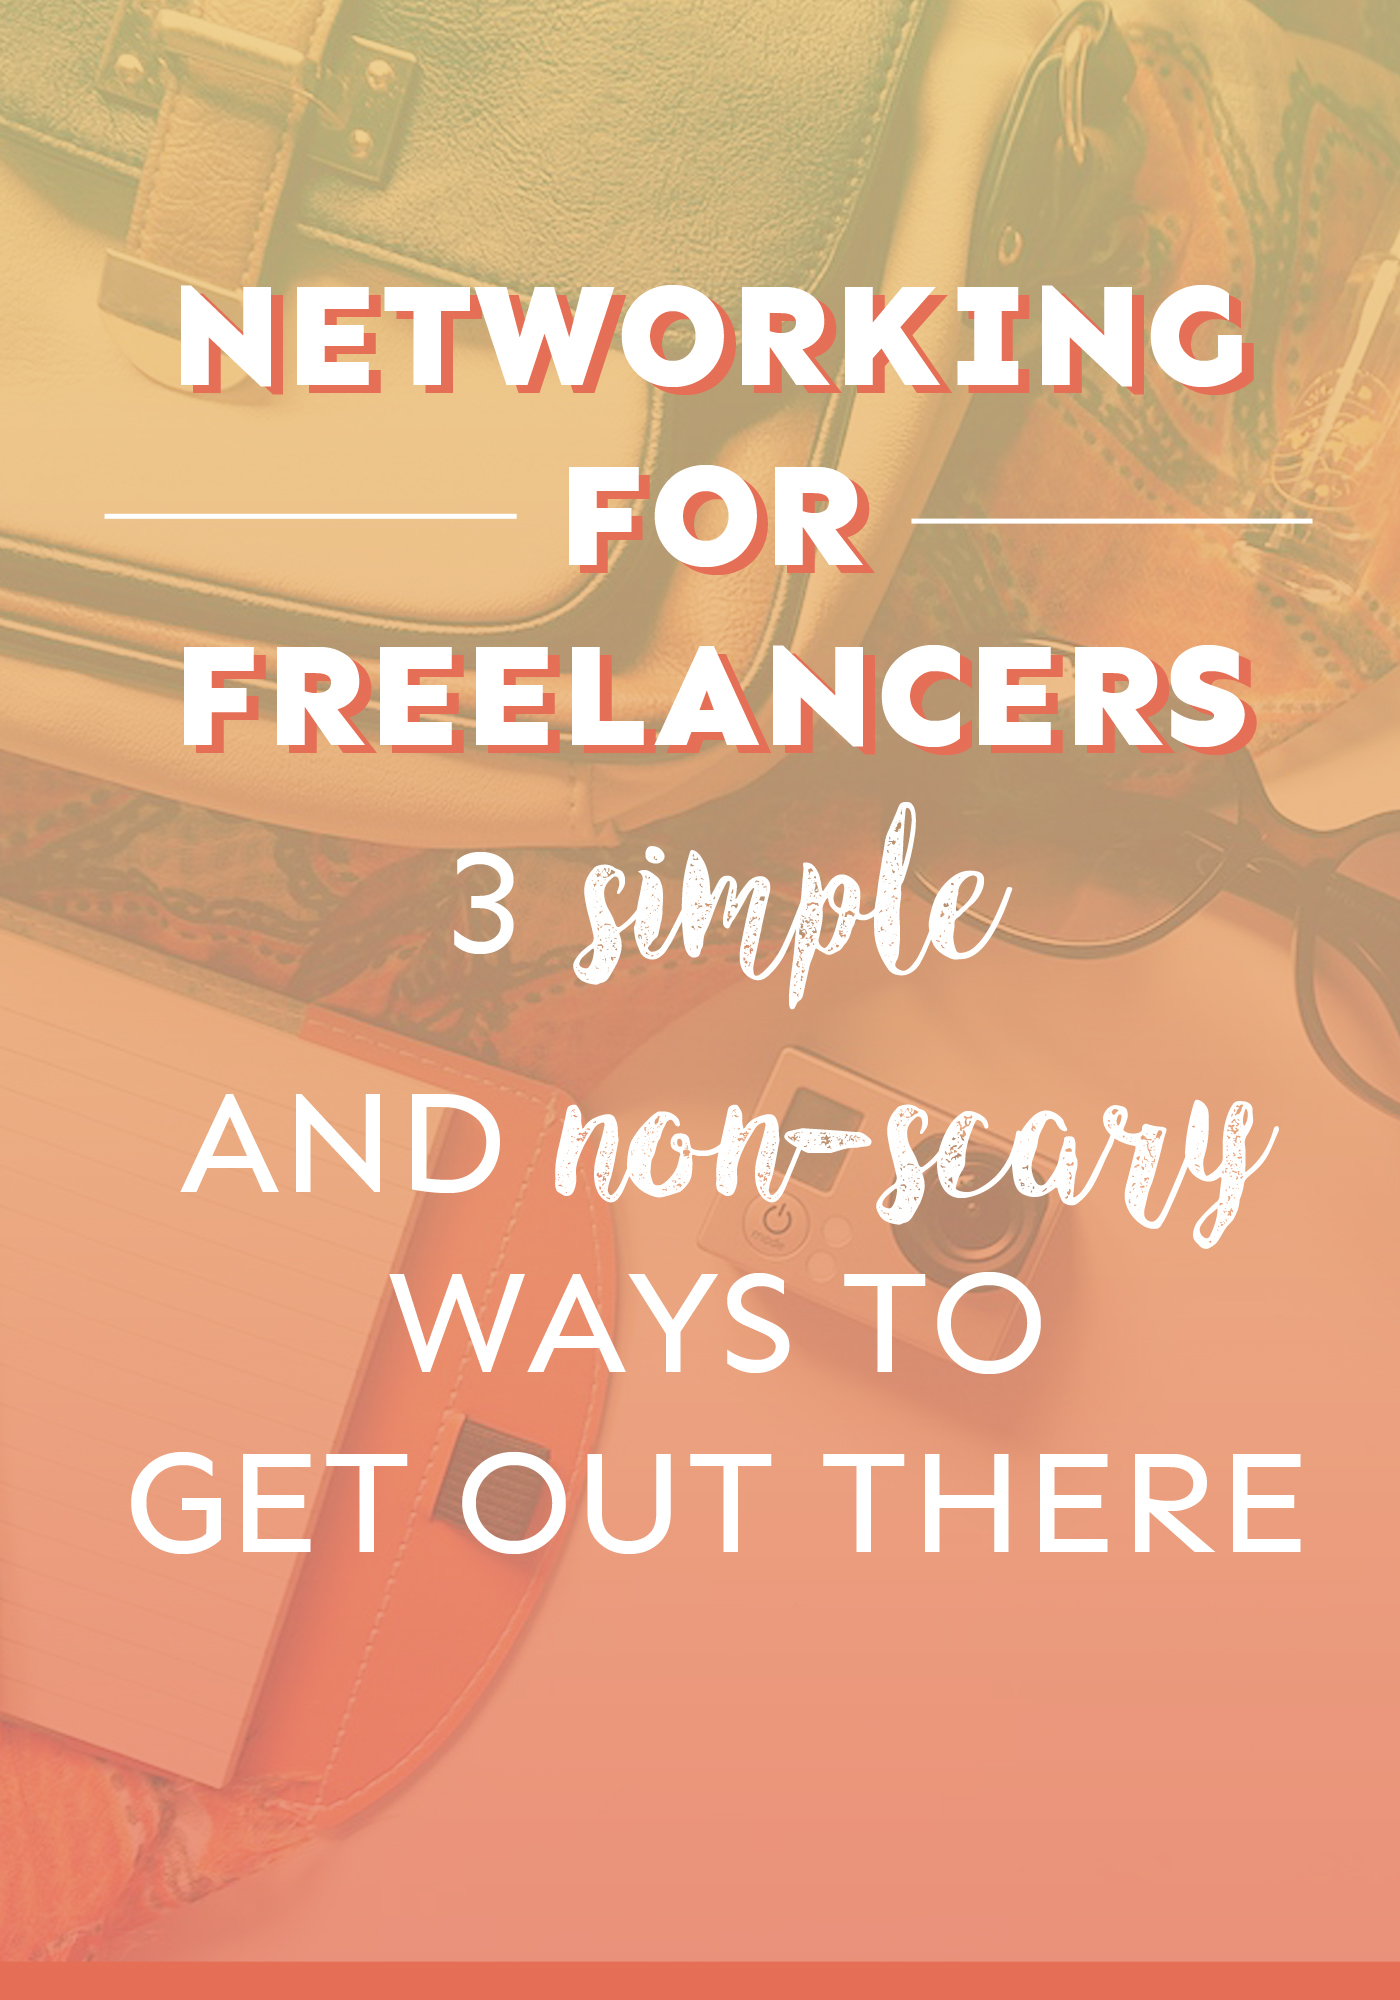 Networking for freelancers is so important, especially when you're just starting out! Here are three simple ways you can put yourself out there in the early days.